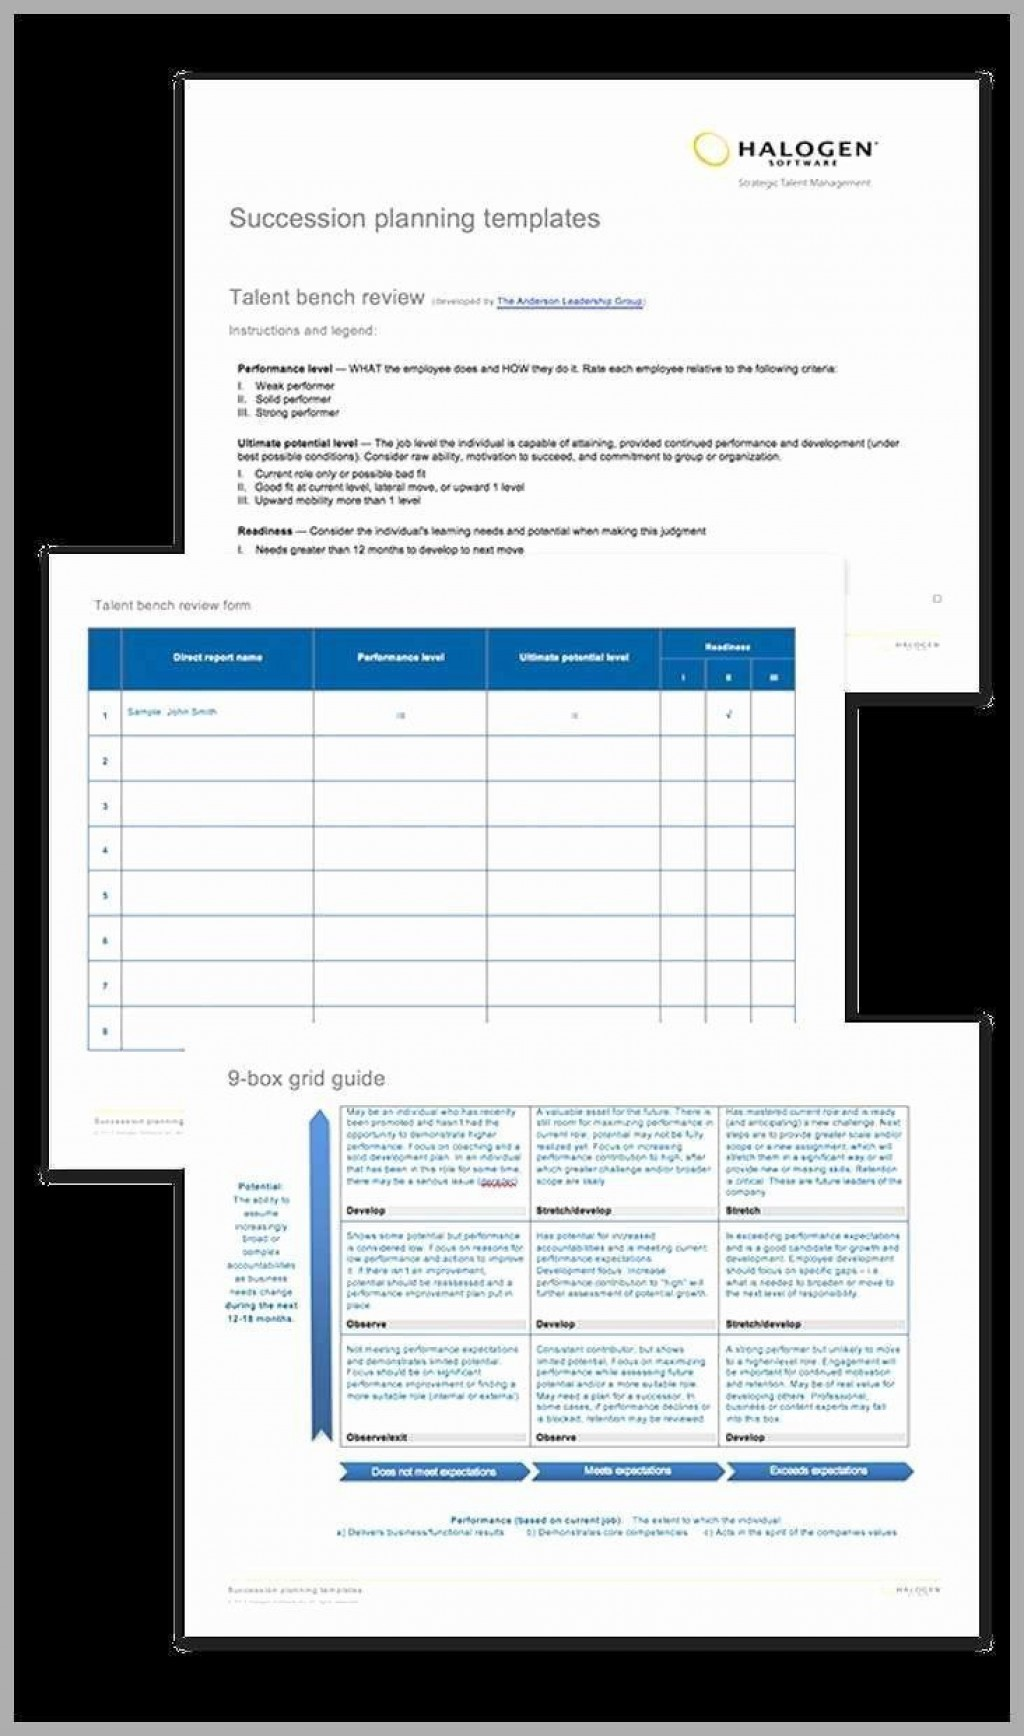 005 Outstanding Succession Planning Template Excel Concept  Free MLarge